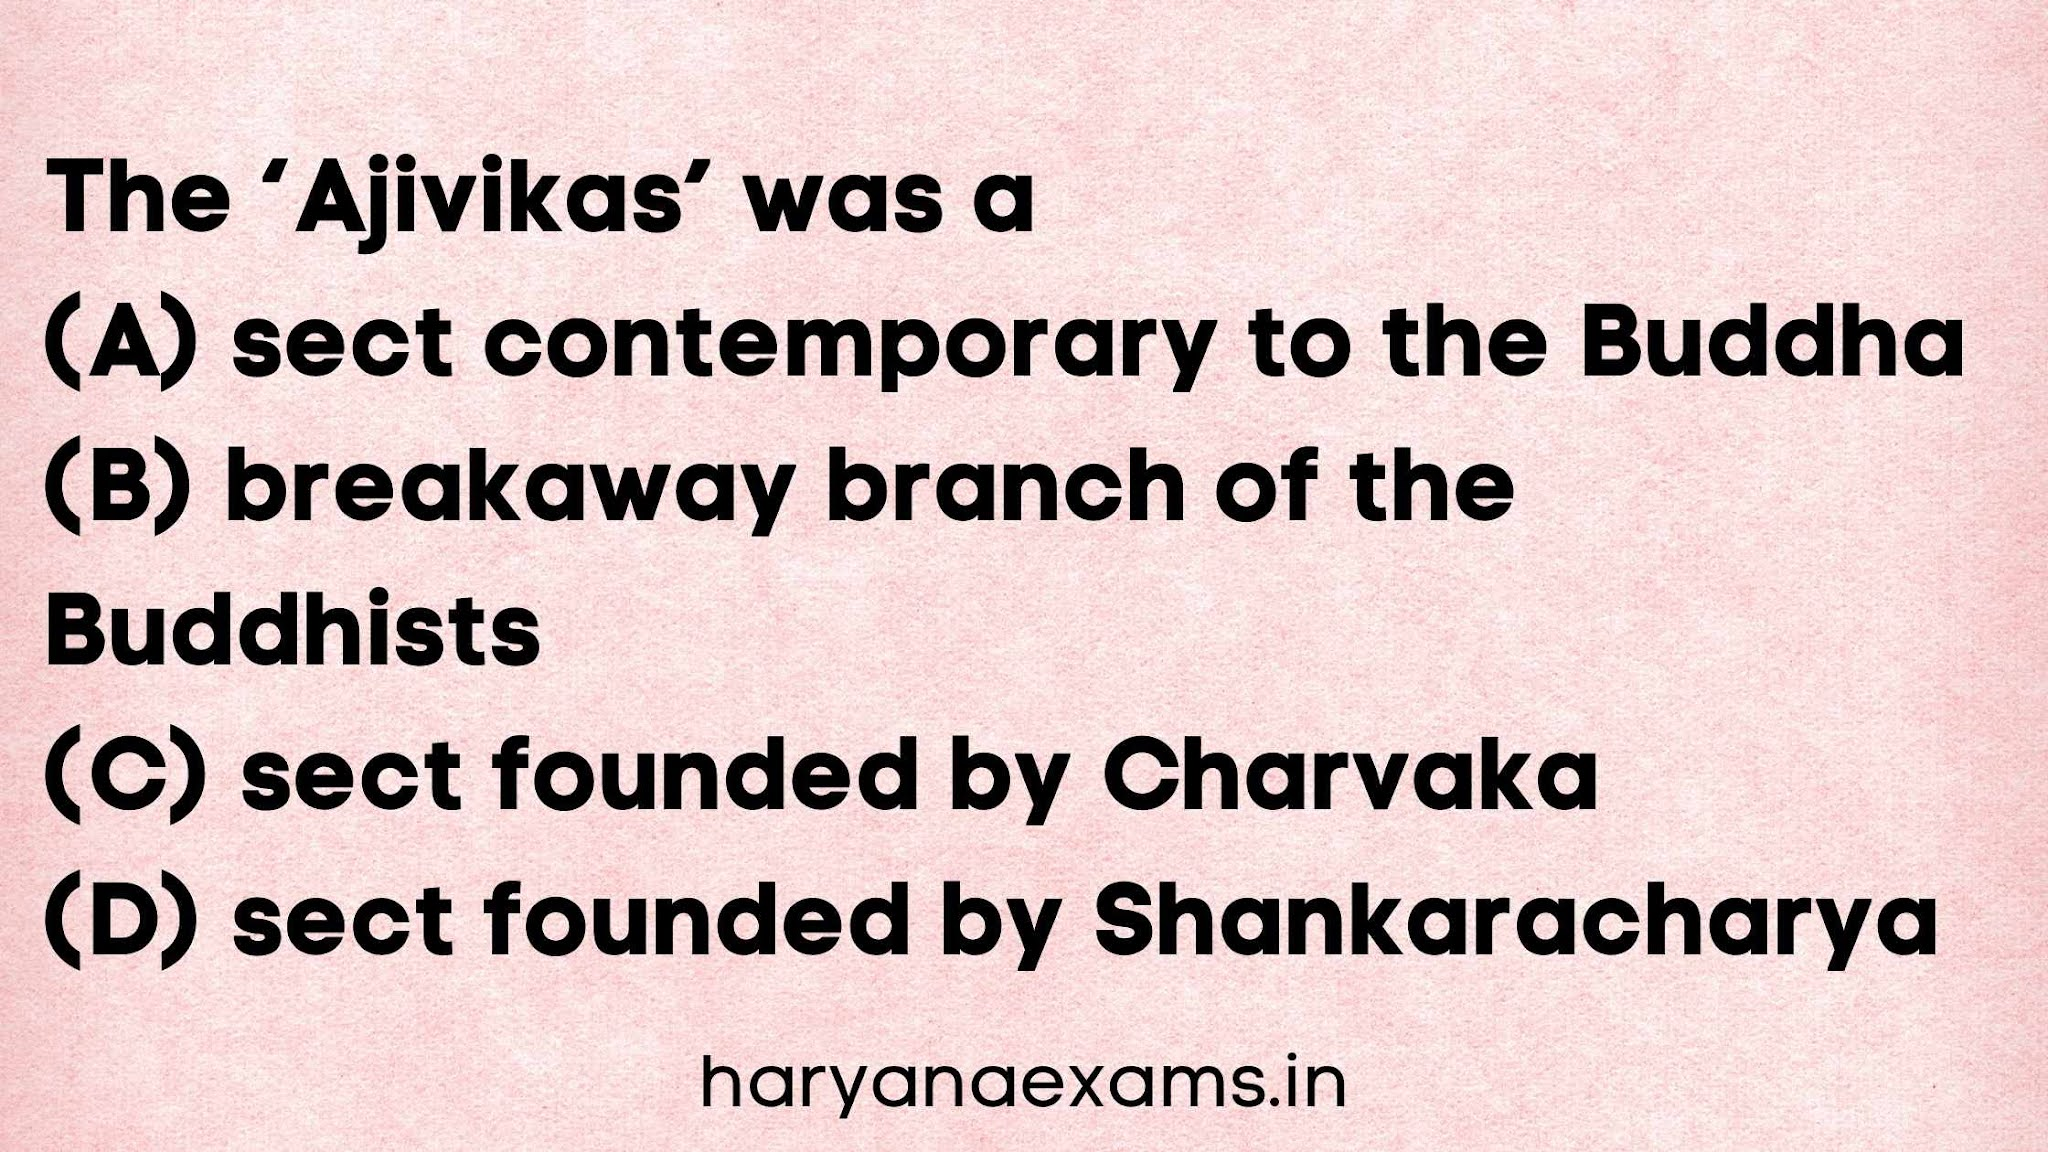 The 'Ajivikas' was a (A) sect contemporary to the Buddha (B) breakaway branch of the Buddhists (C) sect founded by Charvaka (D) sect founded by Shankaracharya